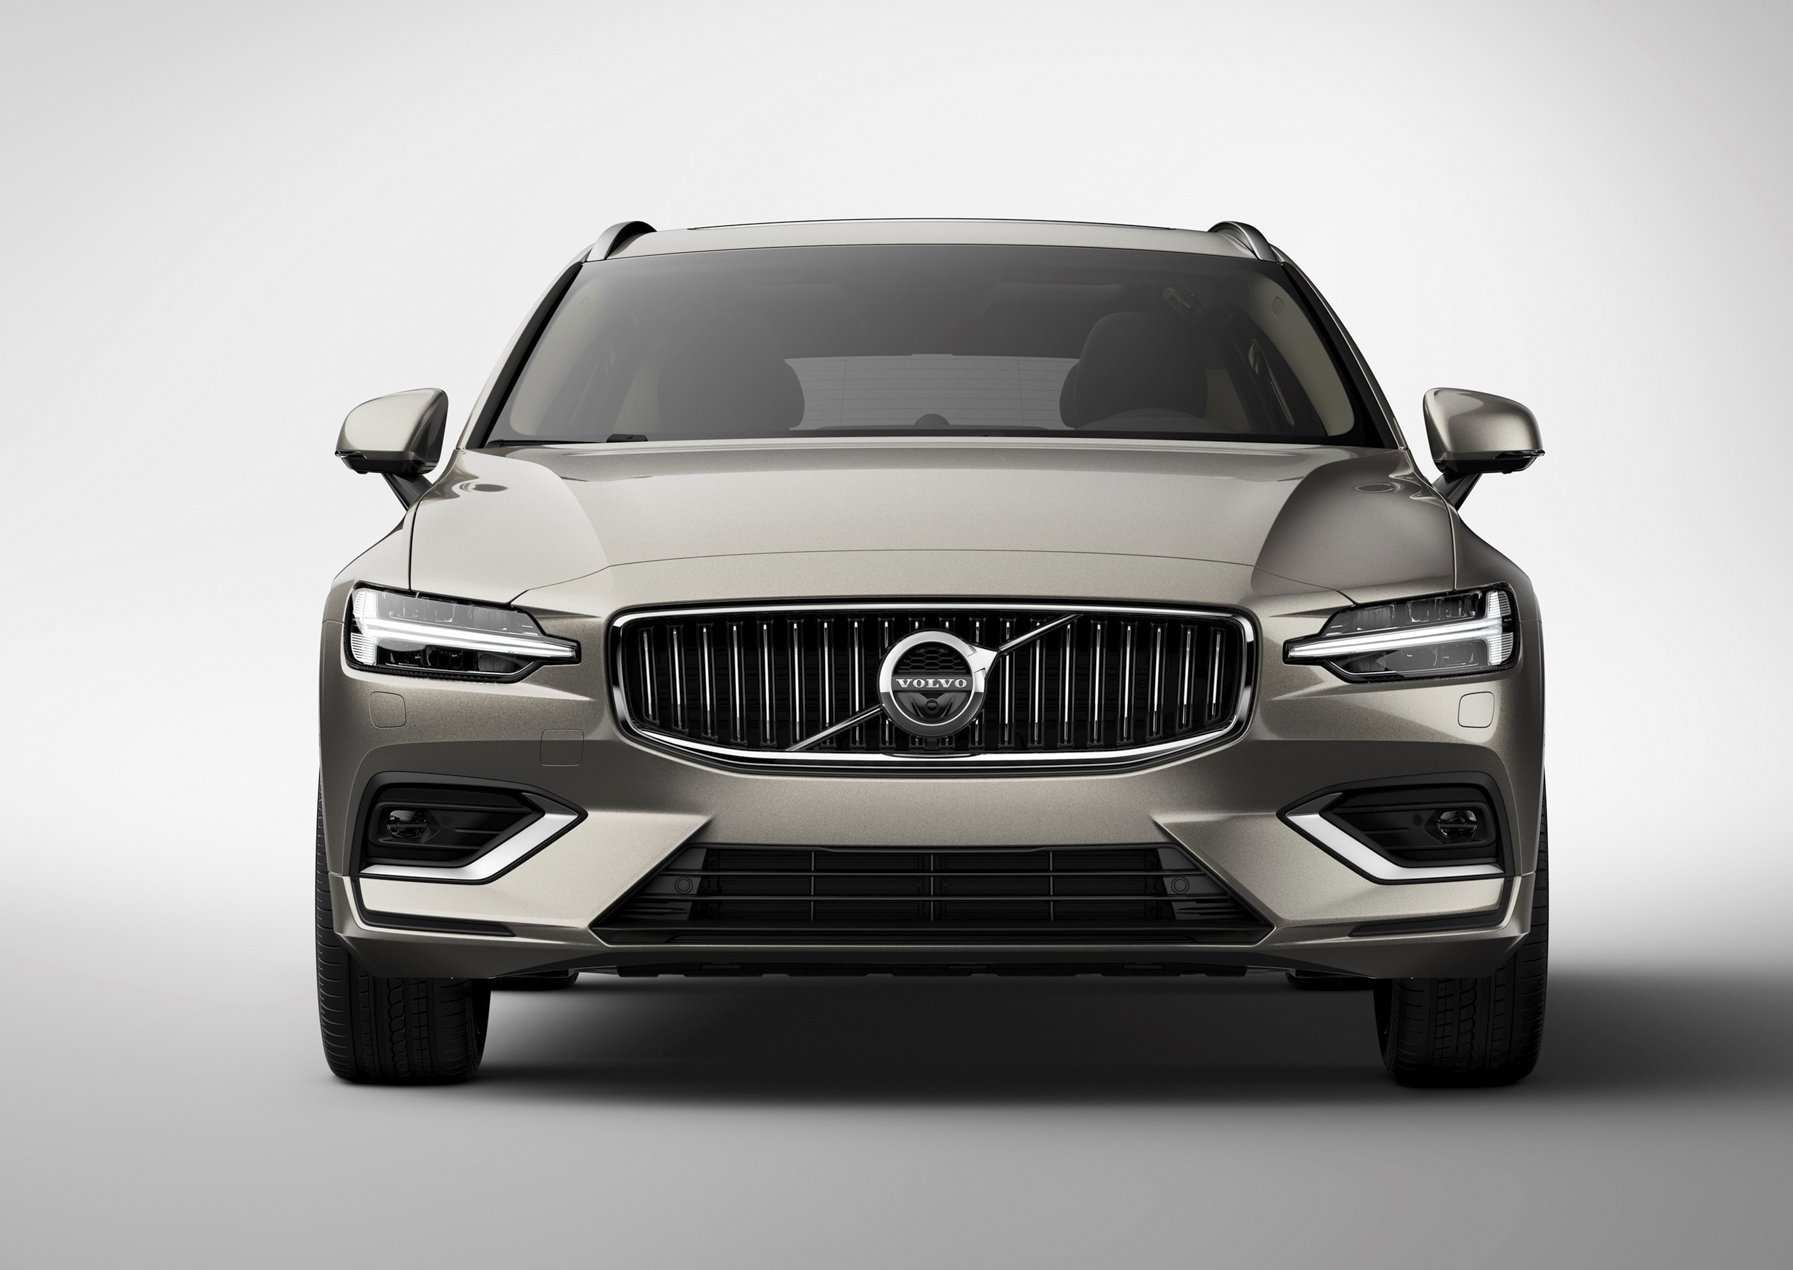 44 All New 2019 Volvo V70 Pictures